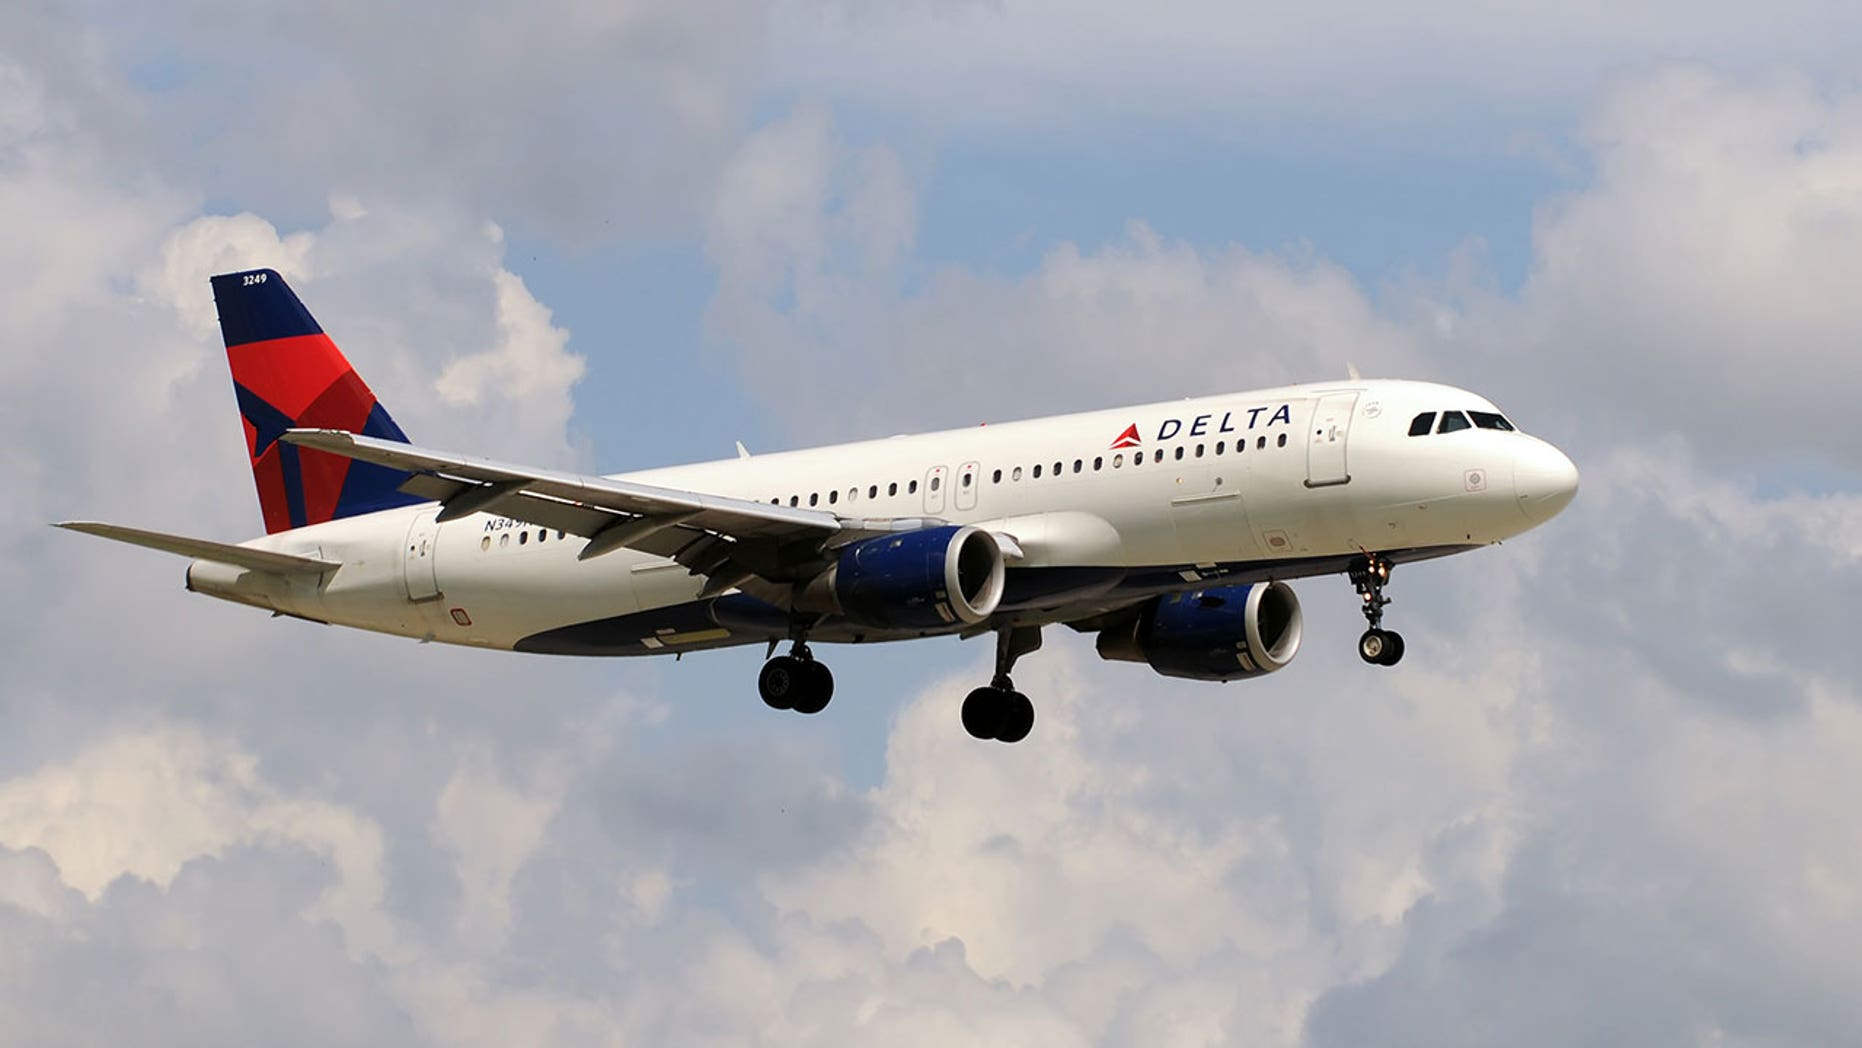 Morgan and Rose Anderson, from Asheville, N.C., rushed to the aid of a Delta passenger who was suffering from hypovolemic shock.